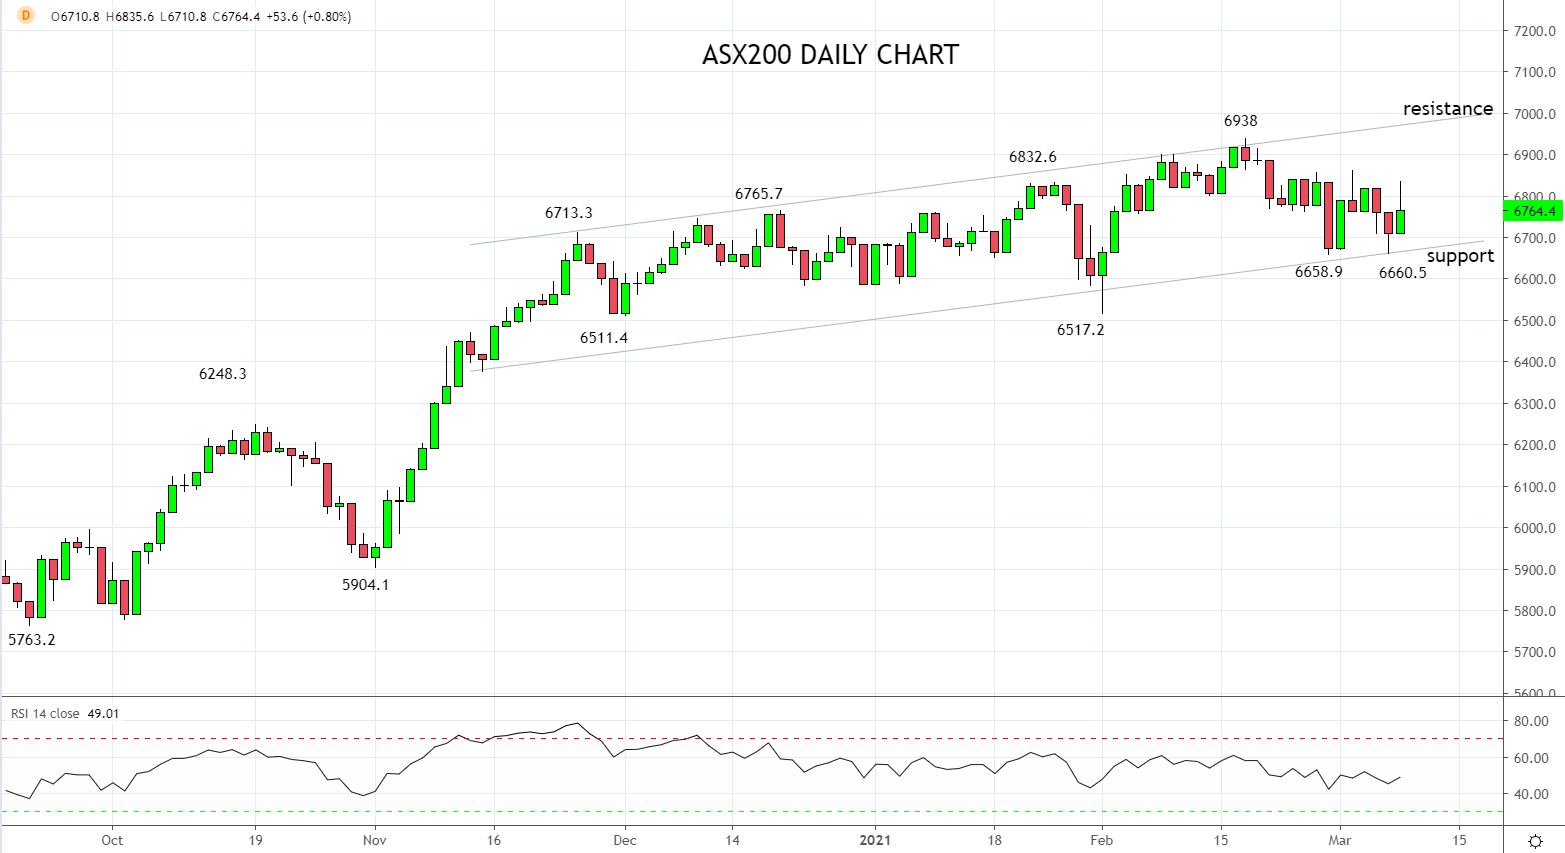 GDP upgrades provide support for ASX200